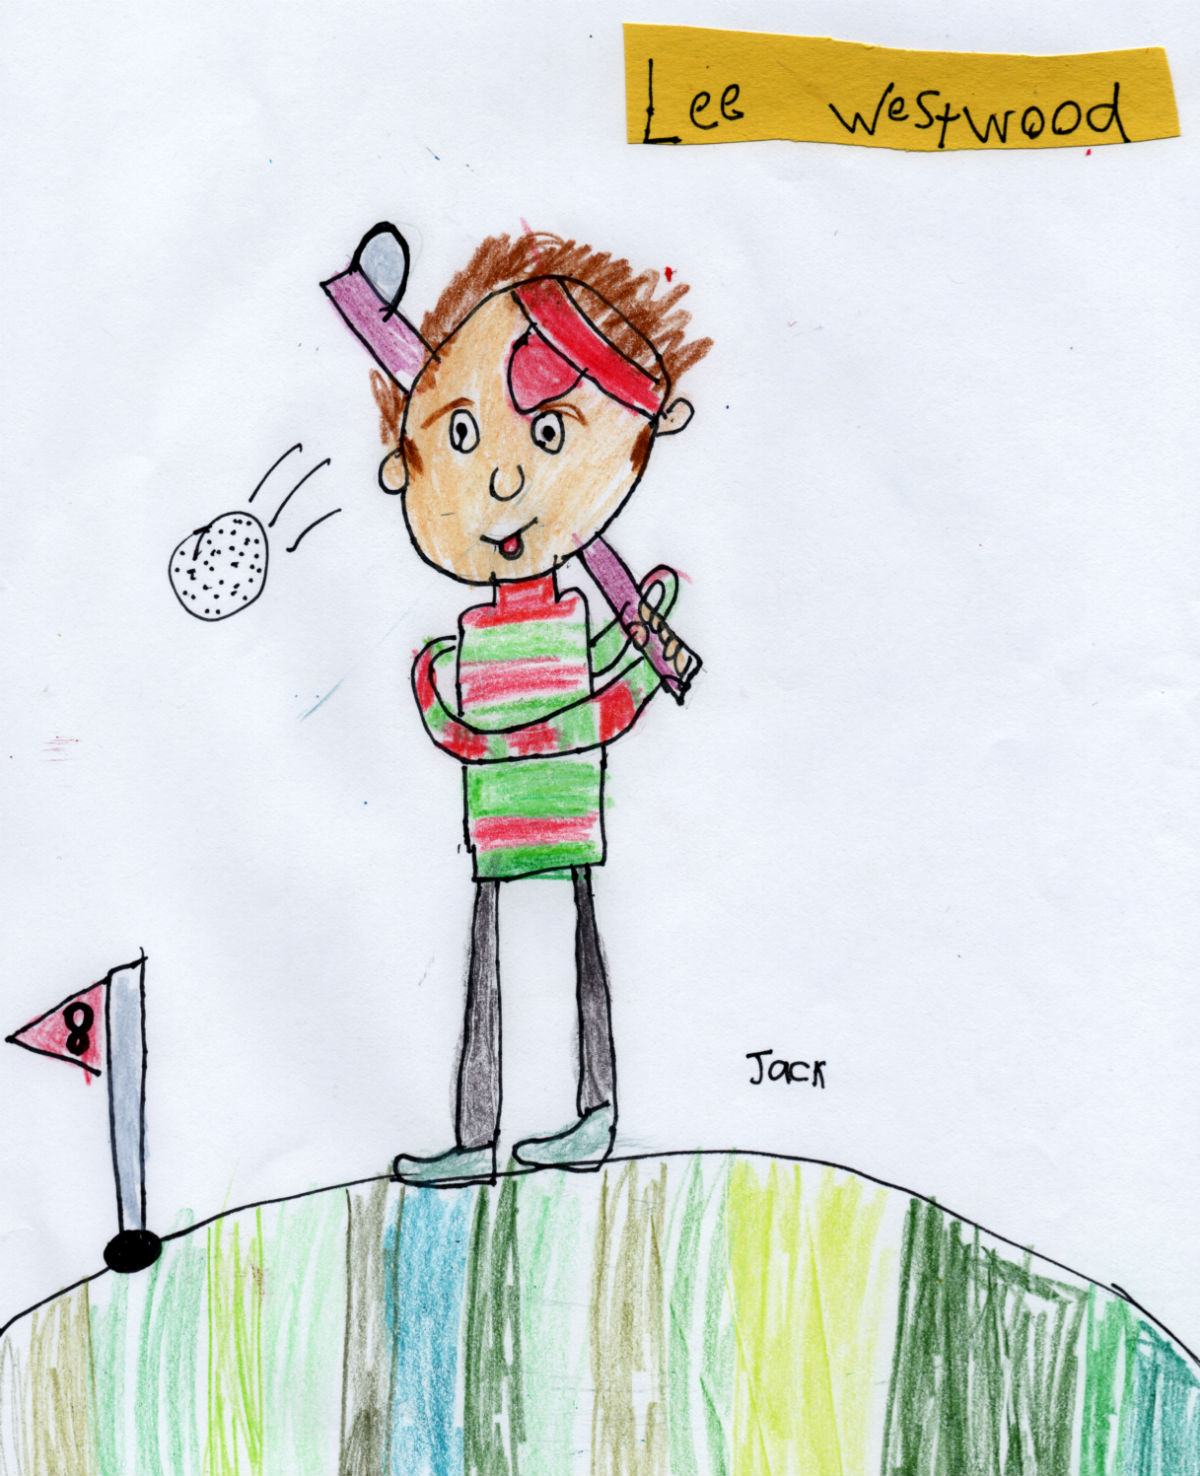 English Golfer — Lee Westwood (#8 from Jack's 'Golf Collection')